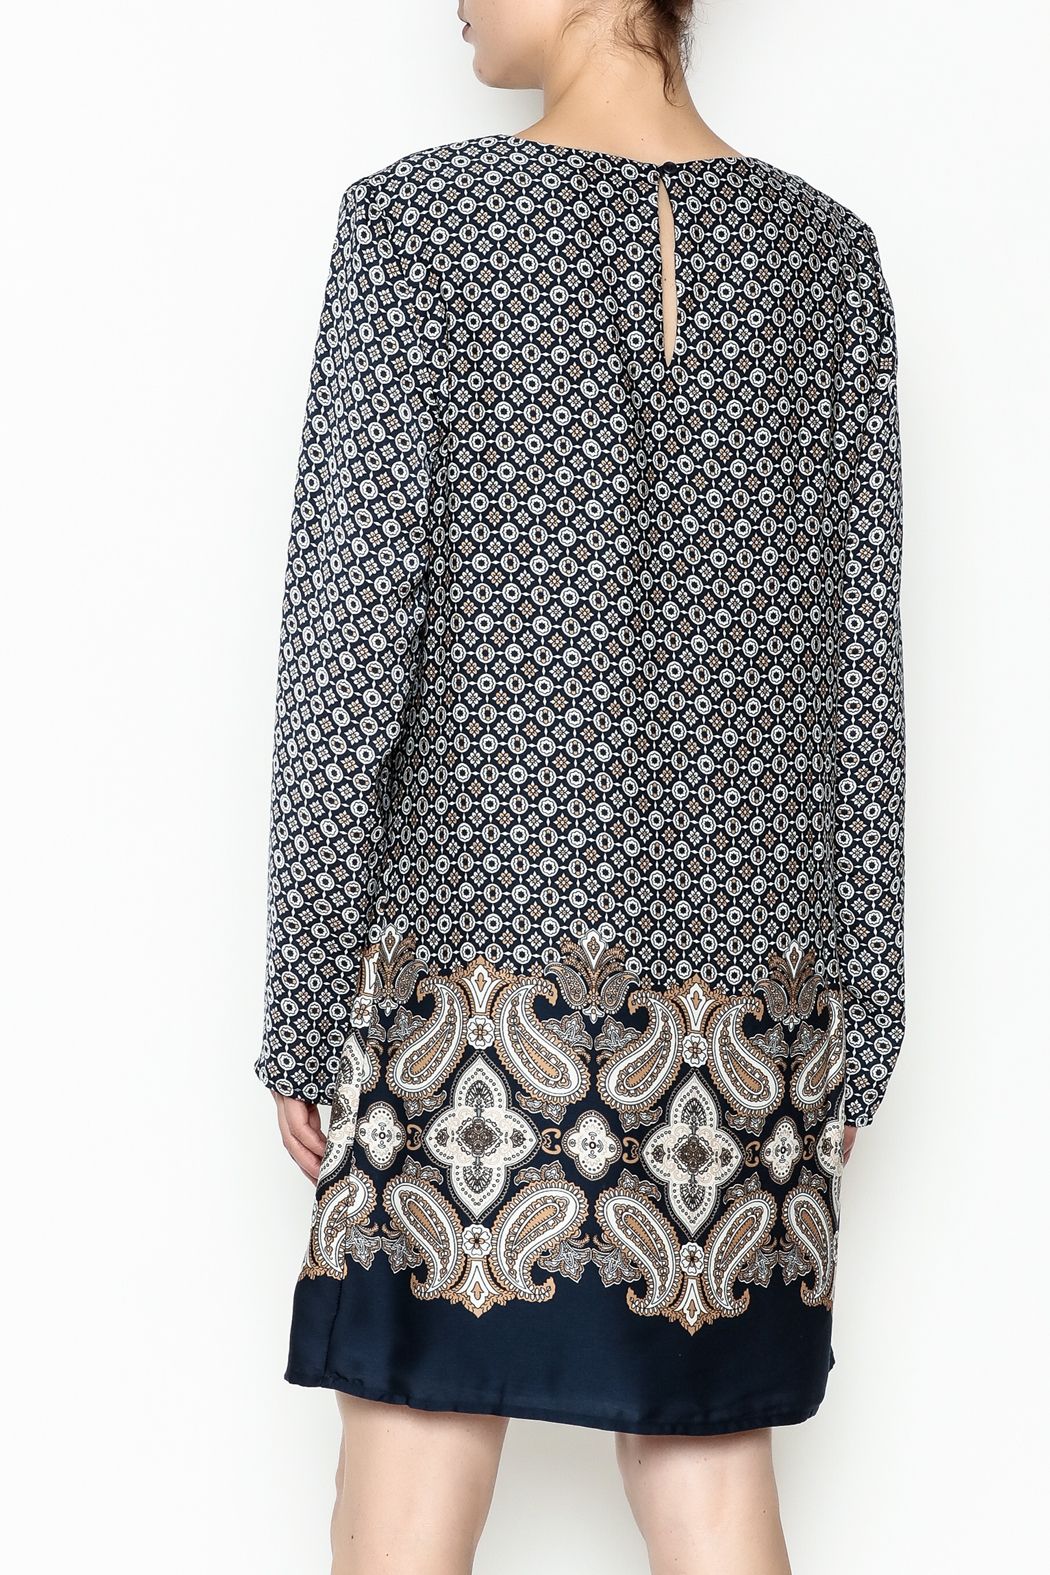 Charlie Paige Paisley Border Dress - Back Cropped Image